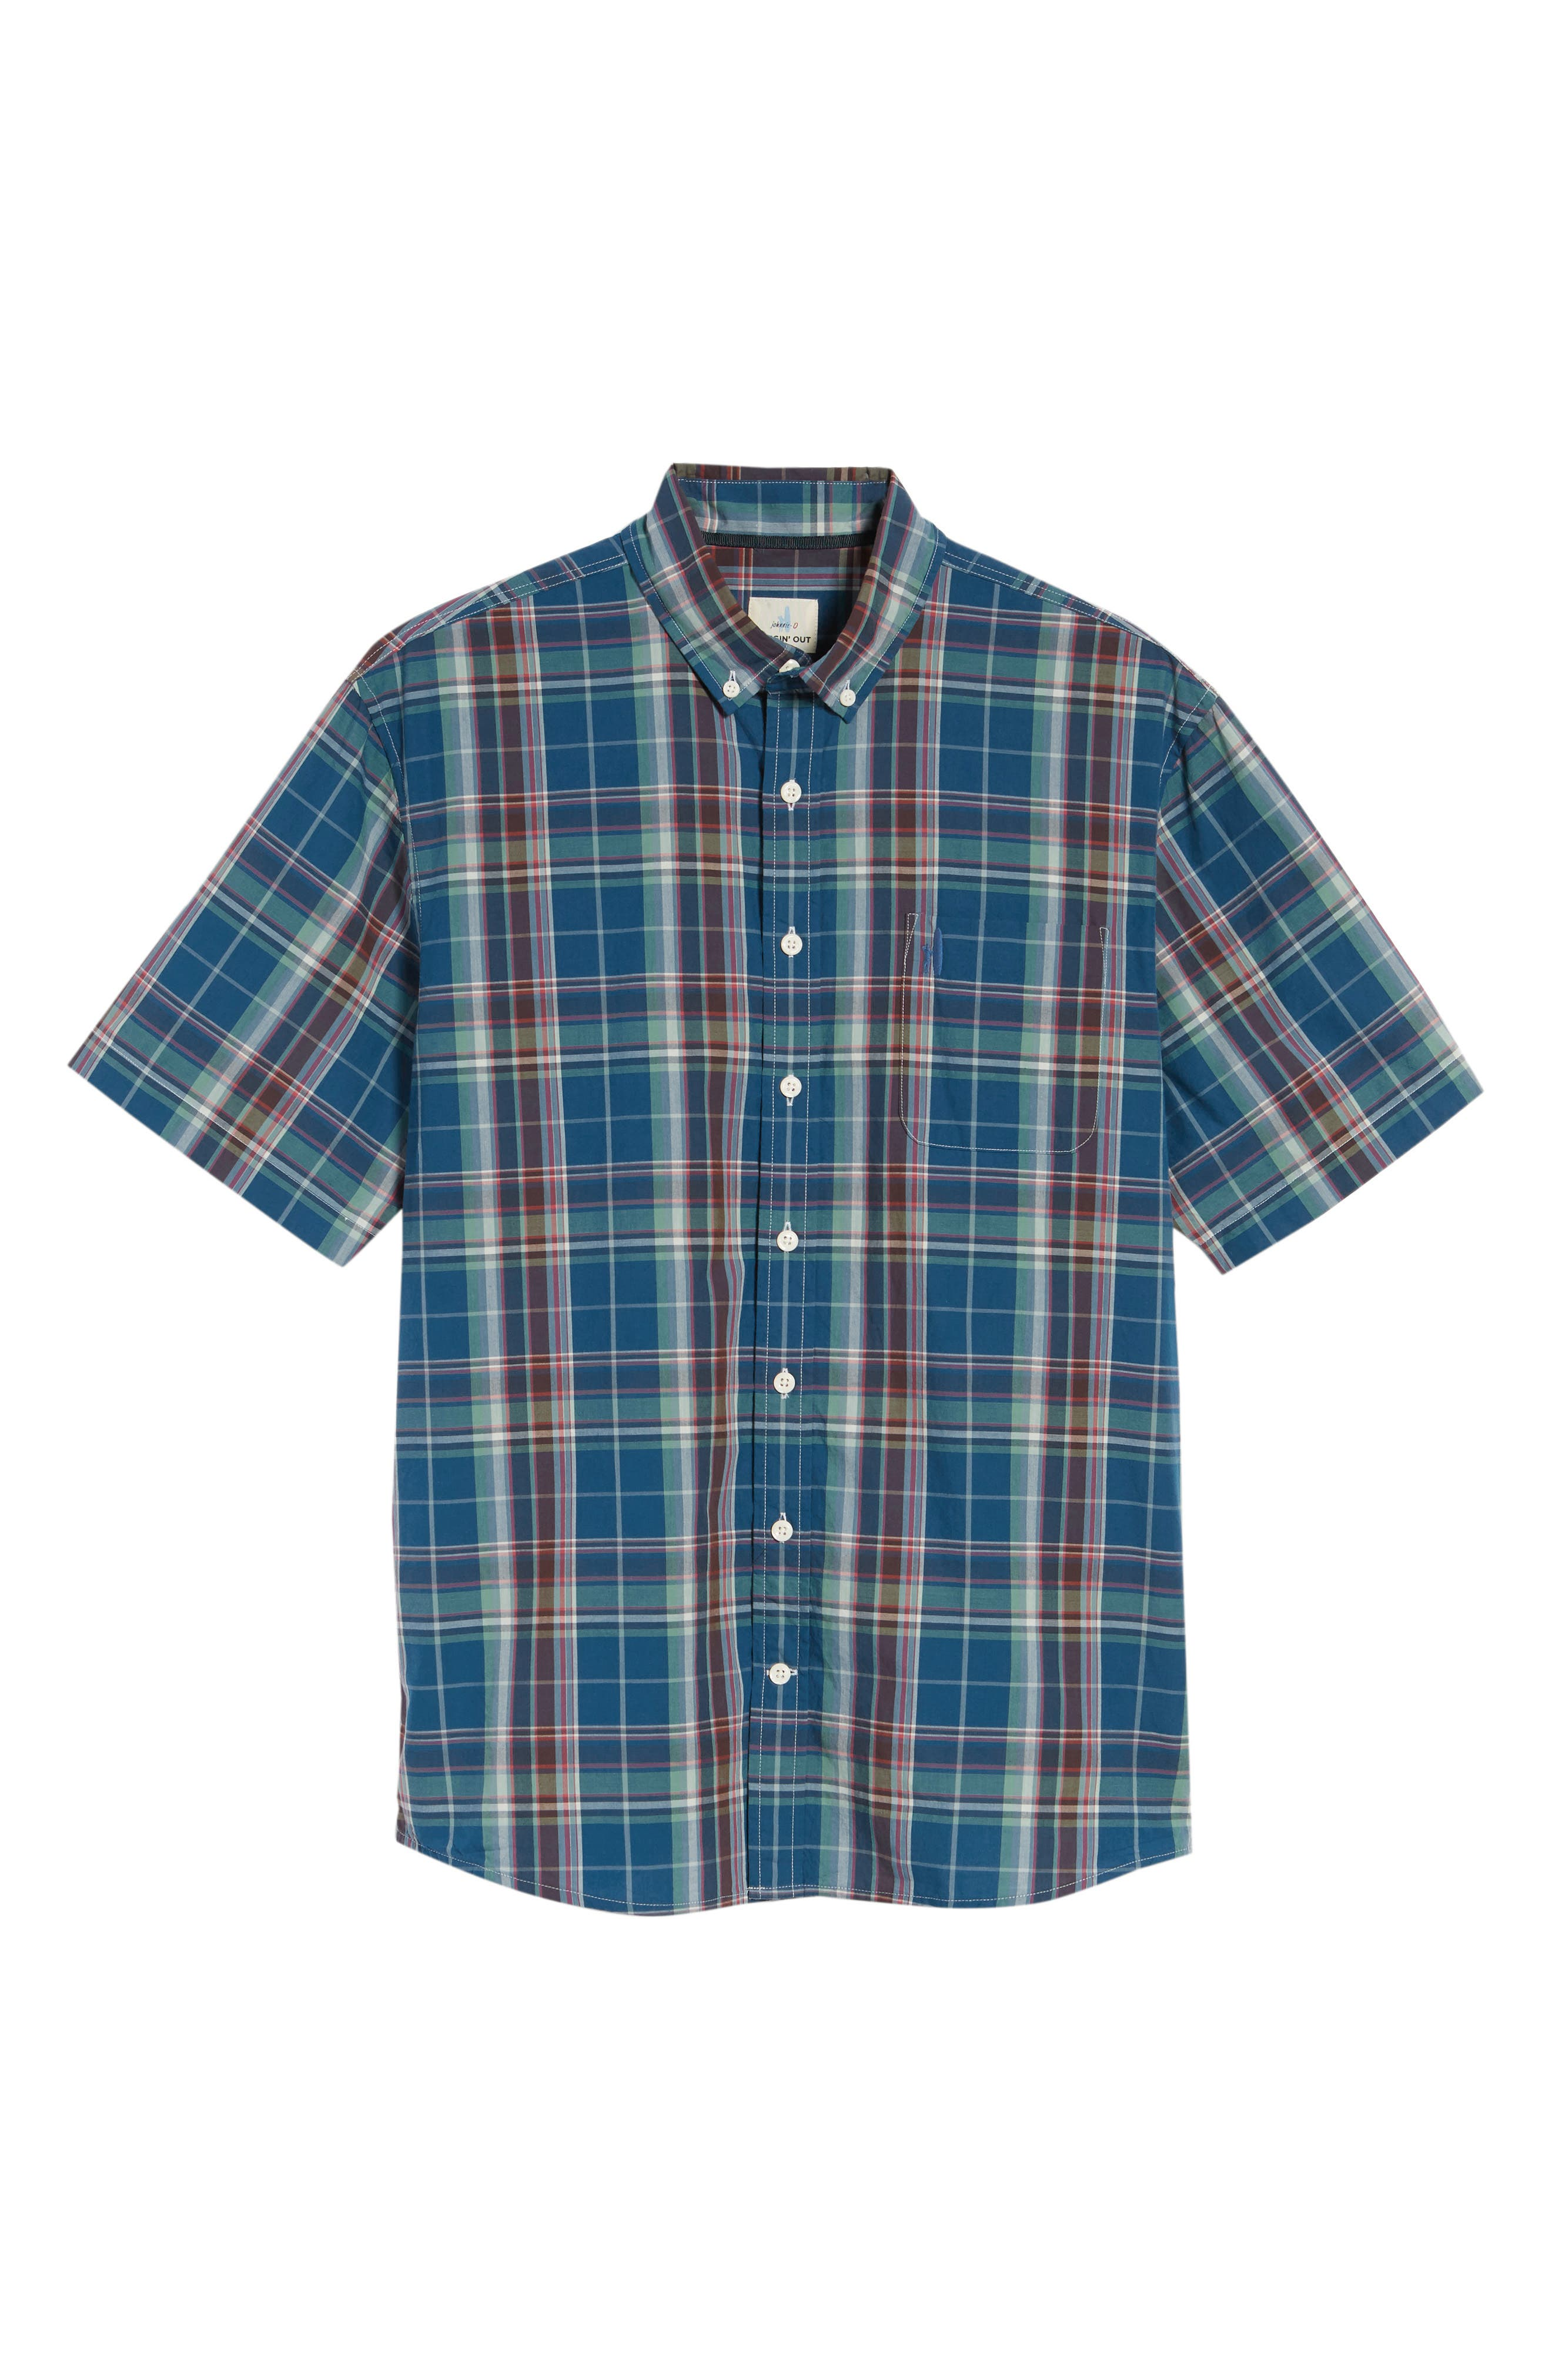 Exum Classic Fit Plaid Sport Shirt,                             Alternate thumbnail 5, color,                             LAKE